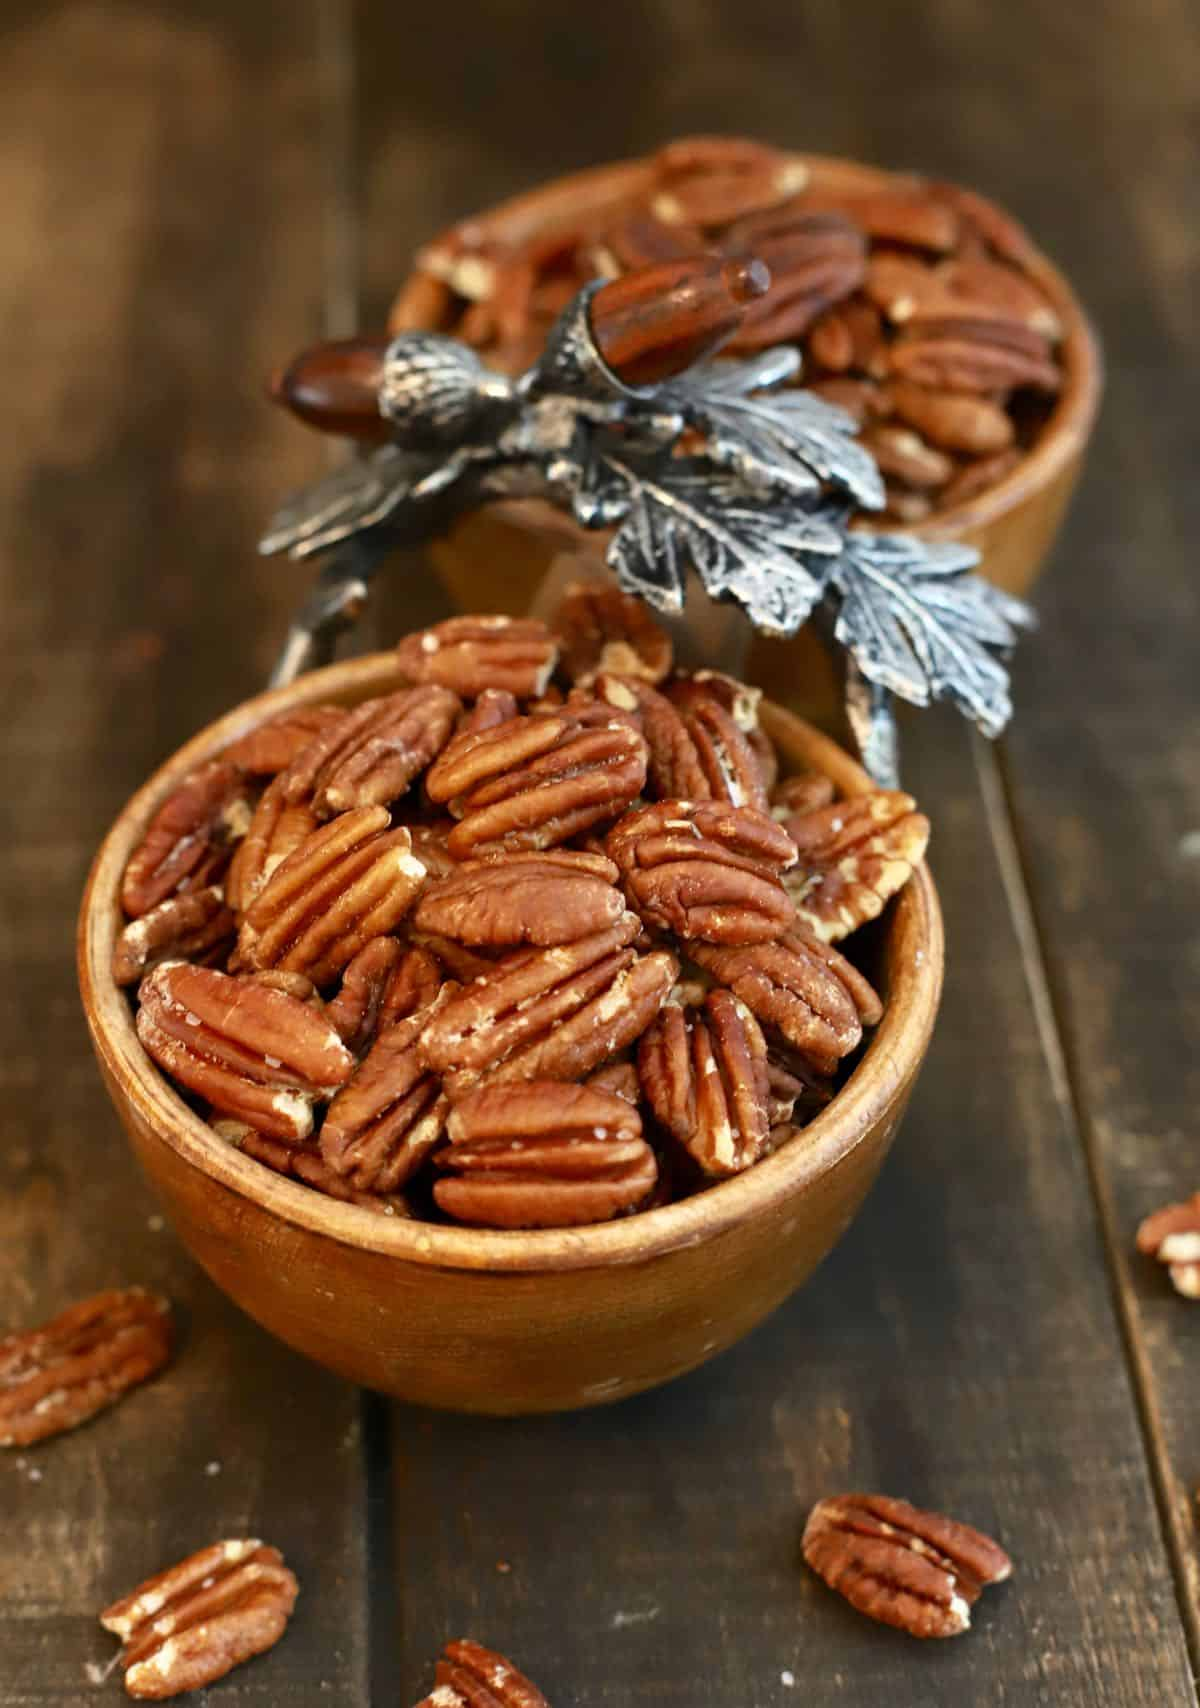 A wooden dish with roasted pecans.